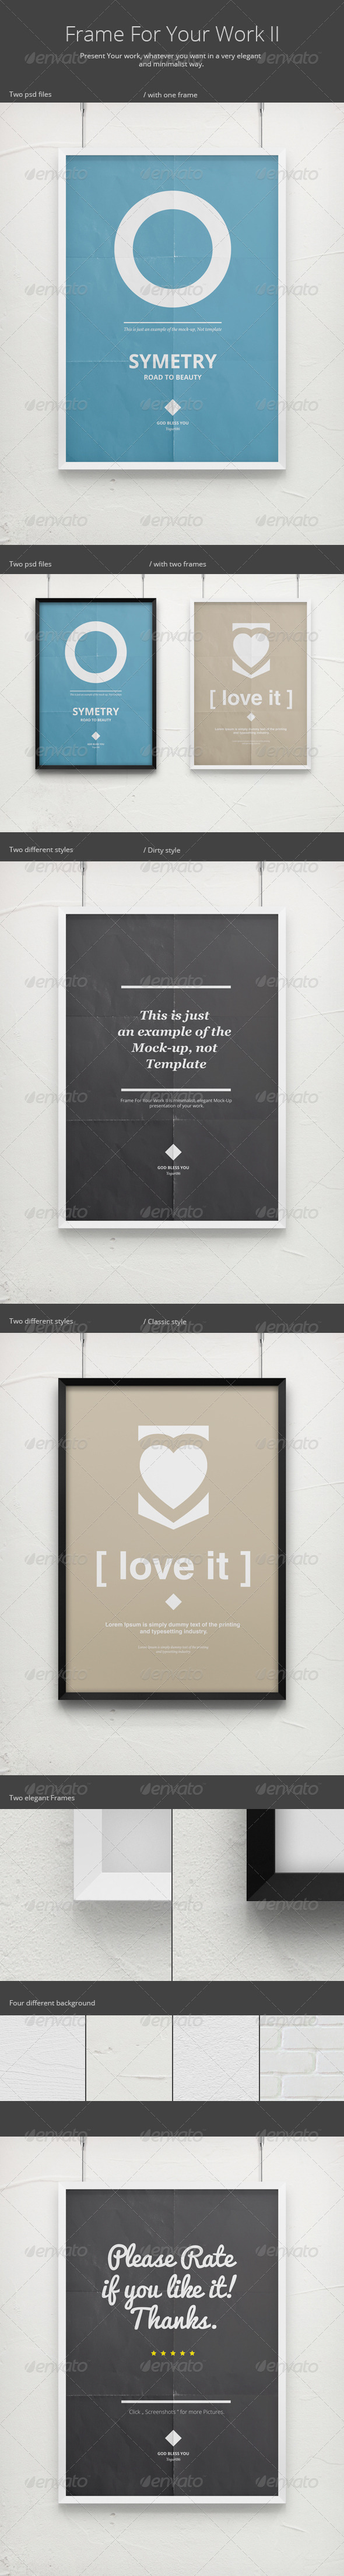 Frame For Your Work II - Poster Mock-Up